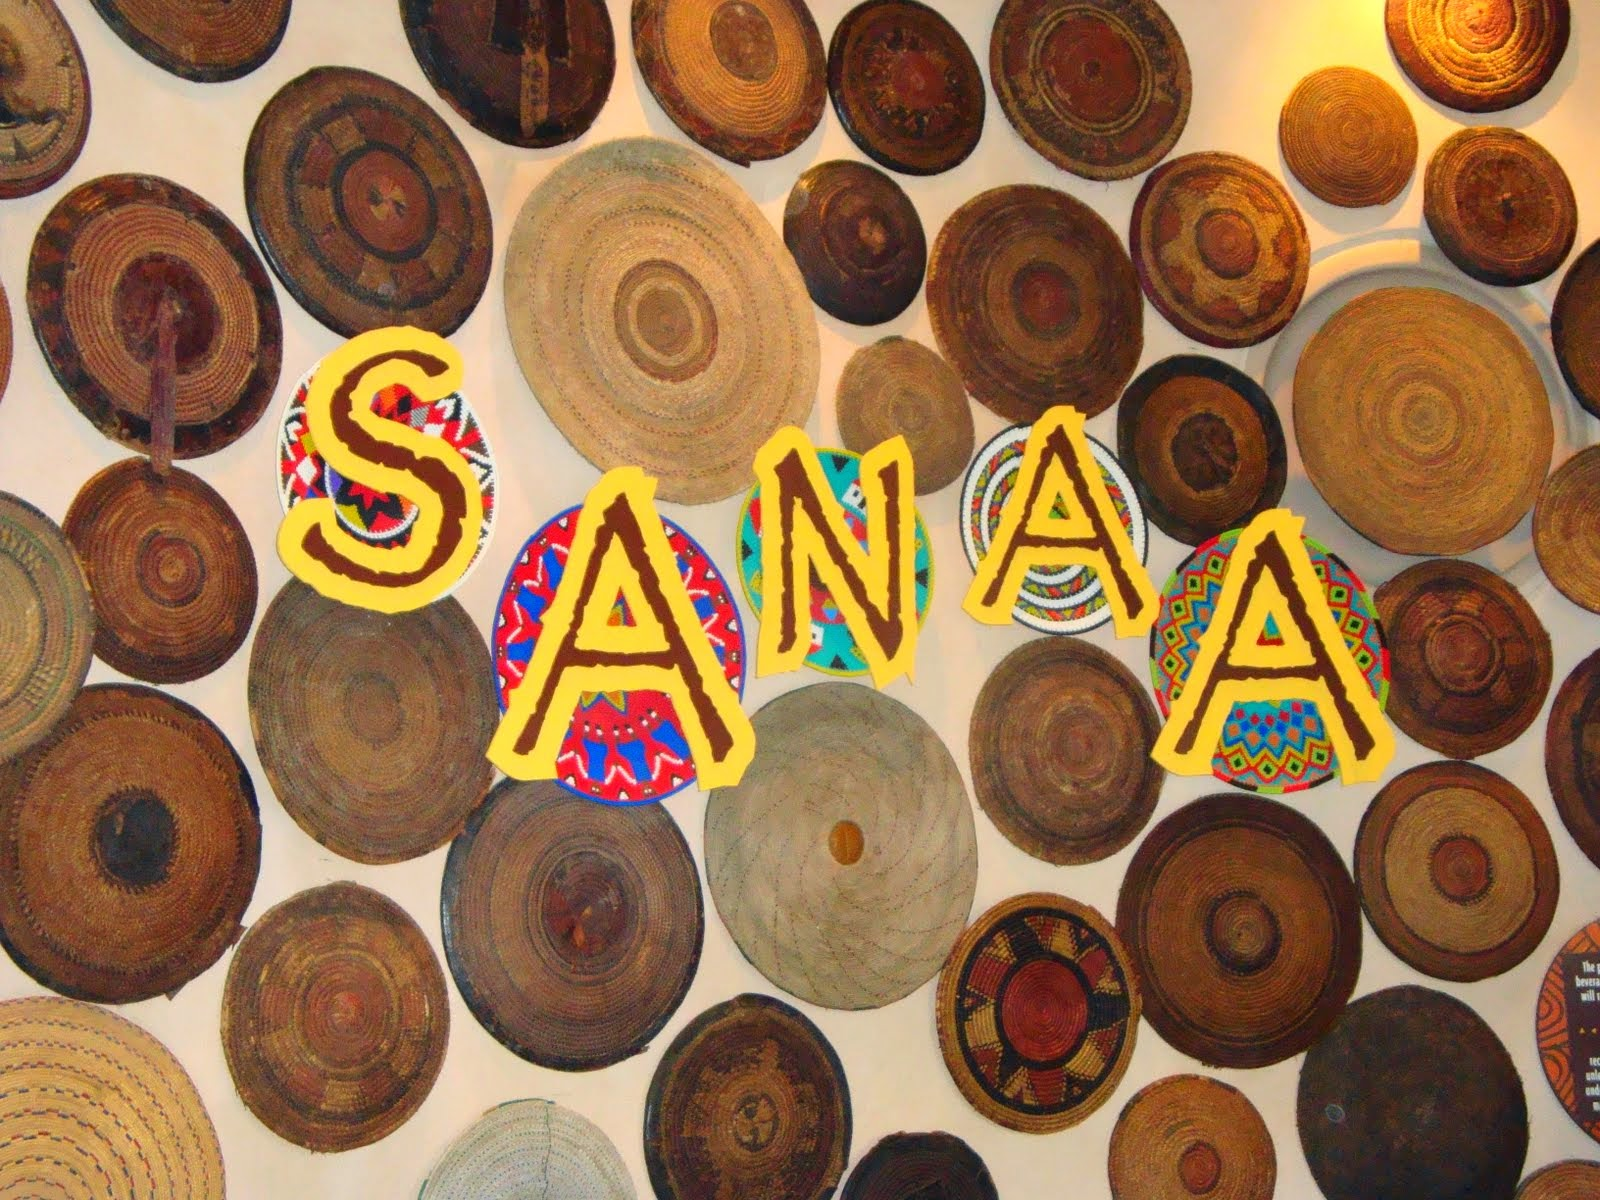 Exotic Flavors at Sanaa in Kidani Village